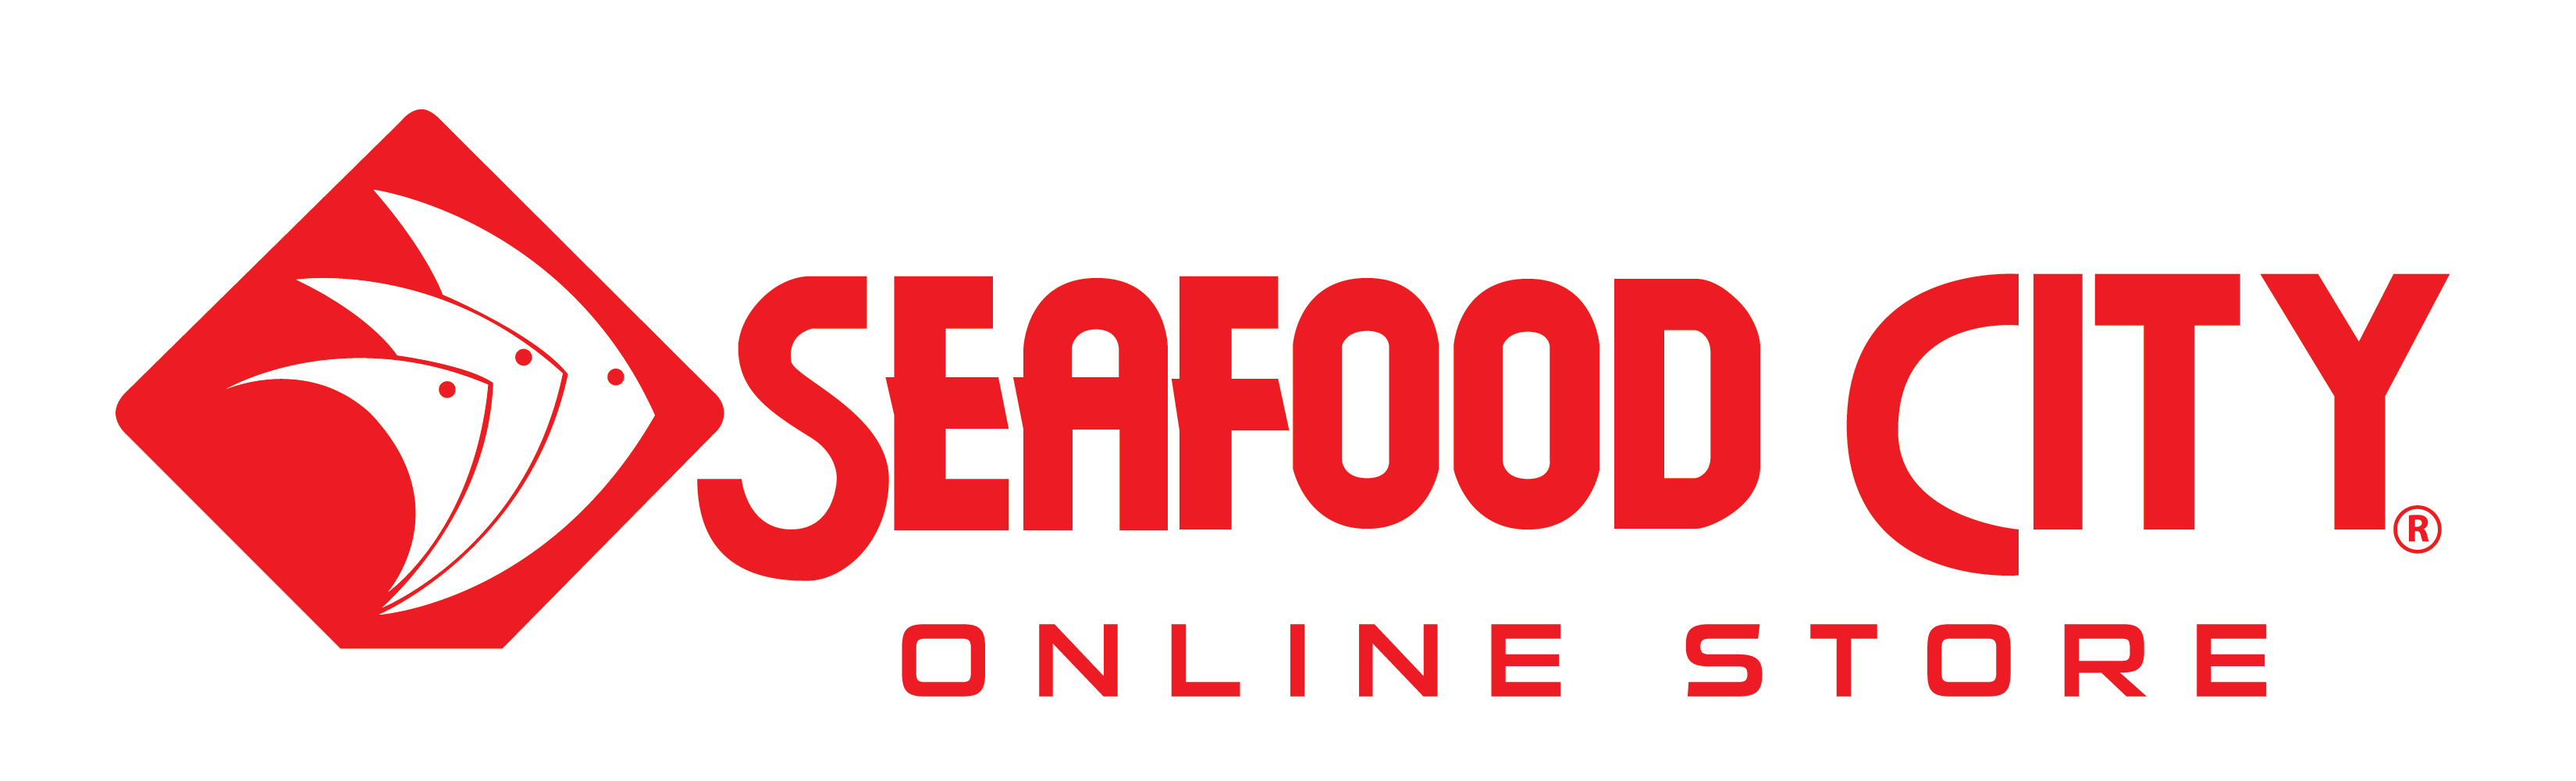 Seafood City Supermarket Cerritos